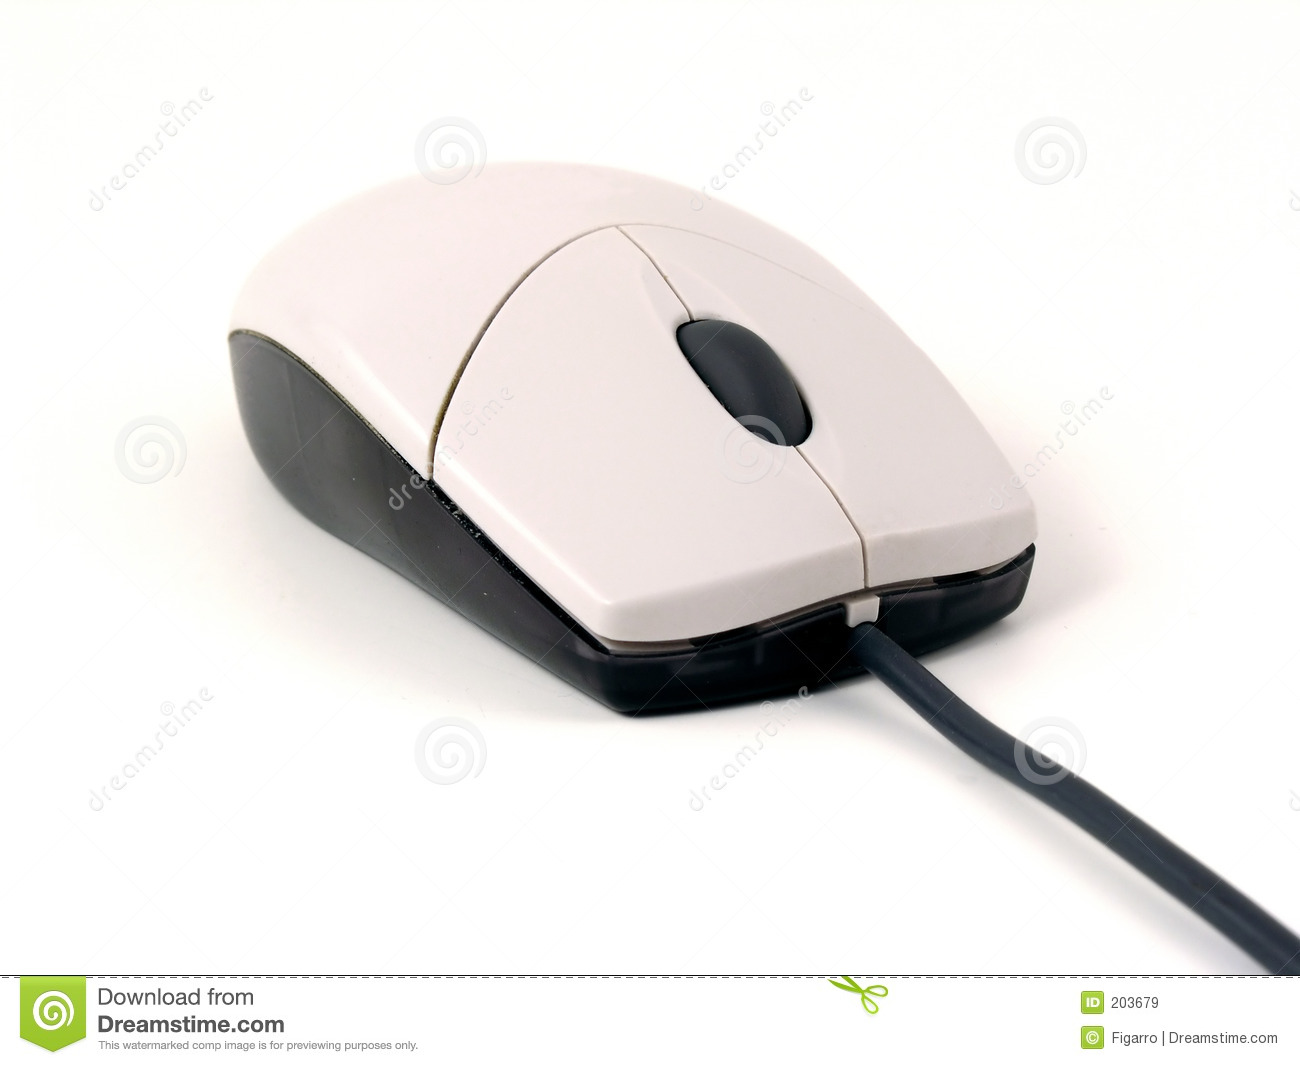 Typical optical mouse